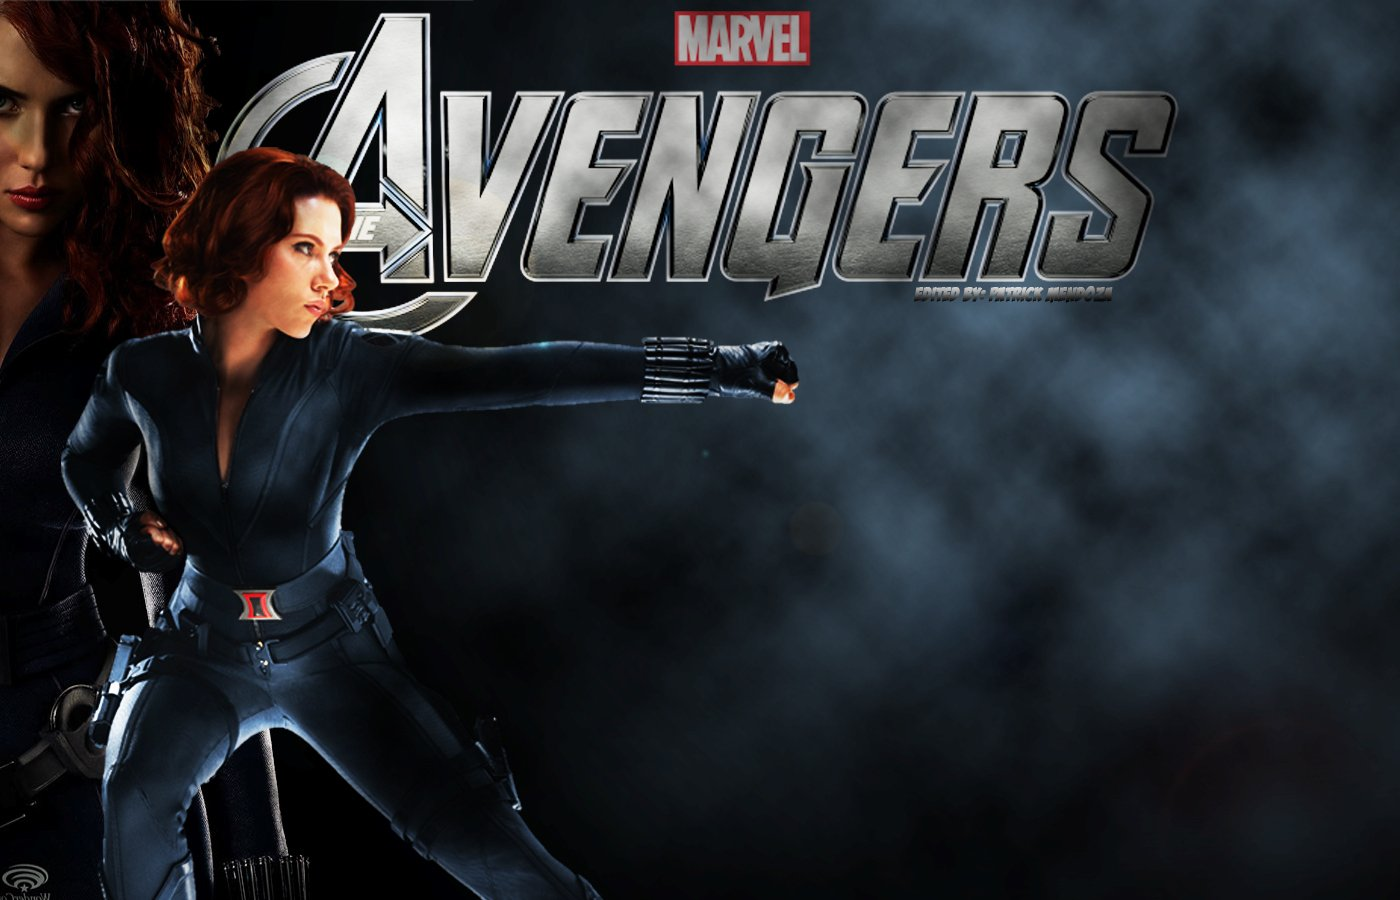 Black Widow Avengers Wallpaper 1400x900